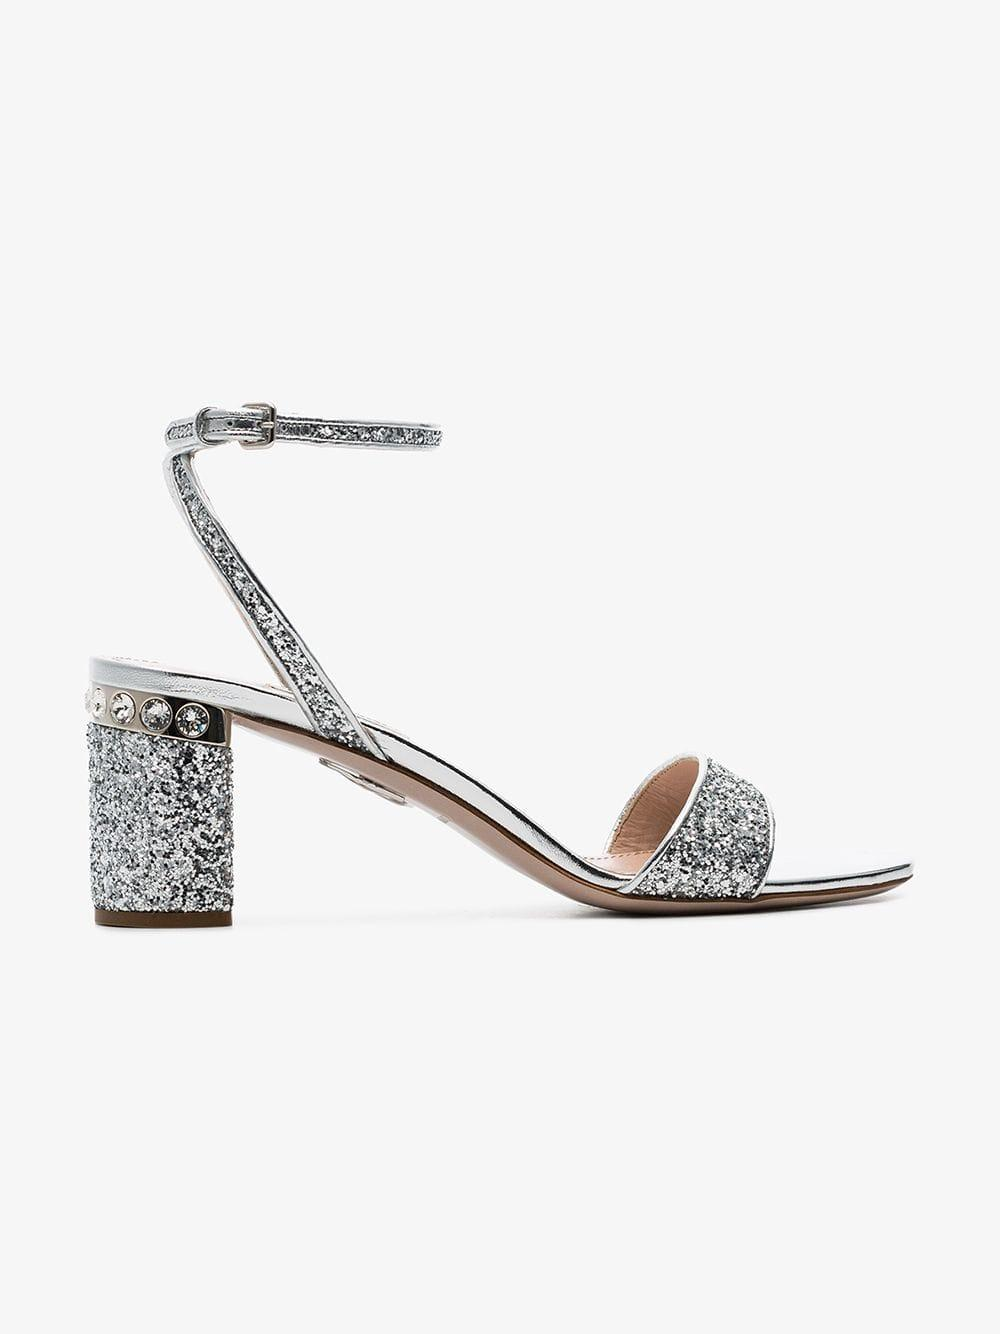 50087cb268ac Lyst - Miu Miu Silver 65 Glitter Block Sandals in Metallic